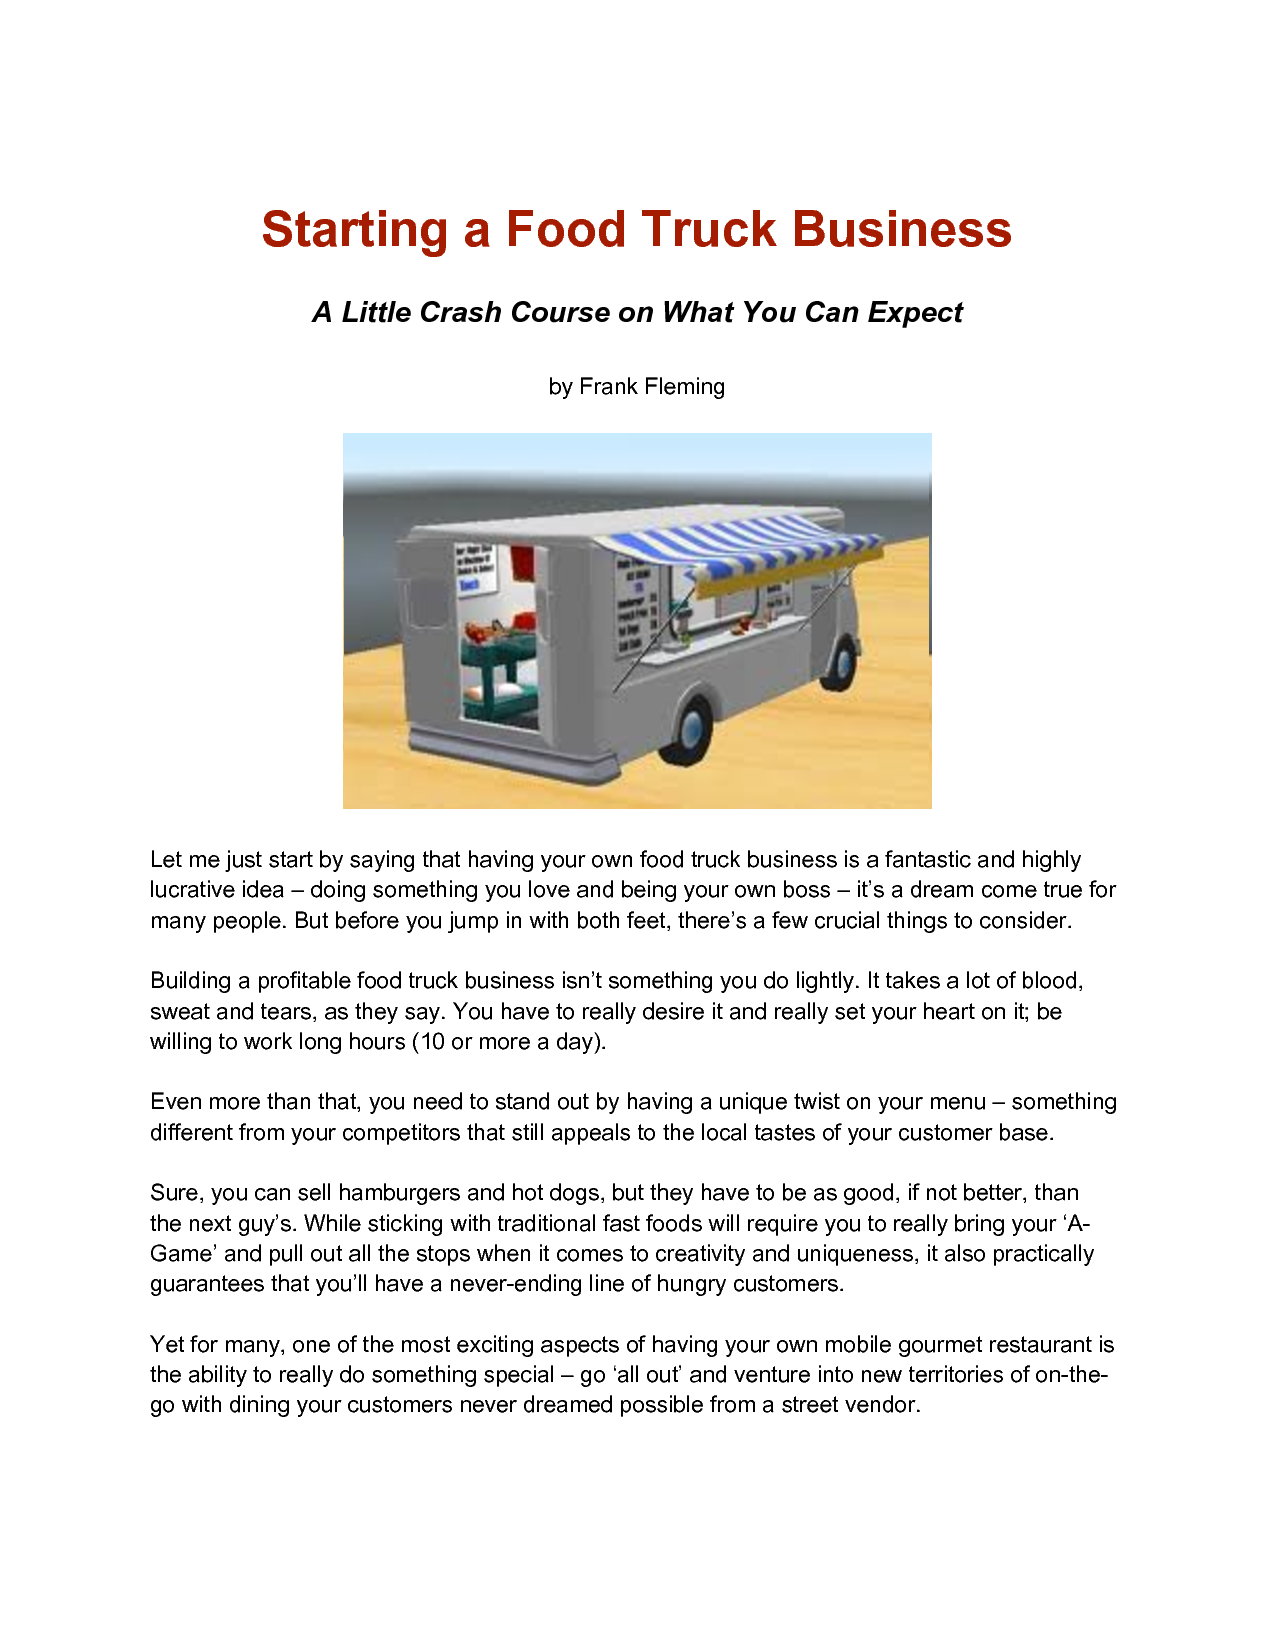 Food truck business plan template httprplg8ebfc880 food truck business plan template httprplg8ebfc880 startbusiness flashek Image collections